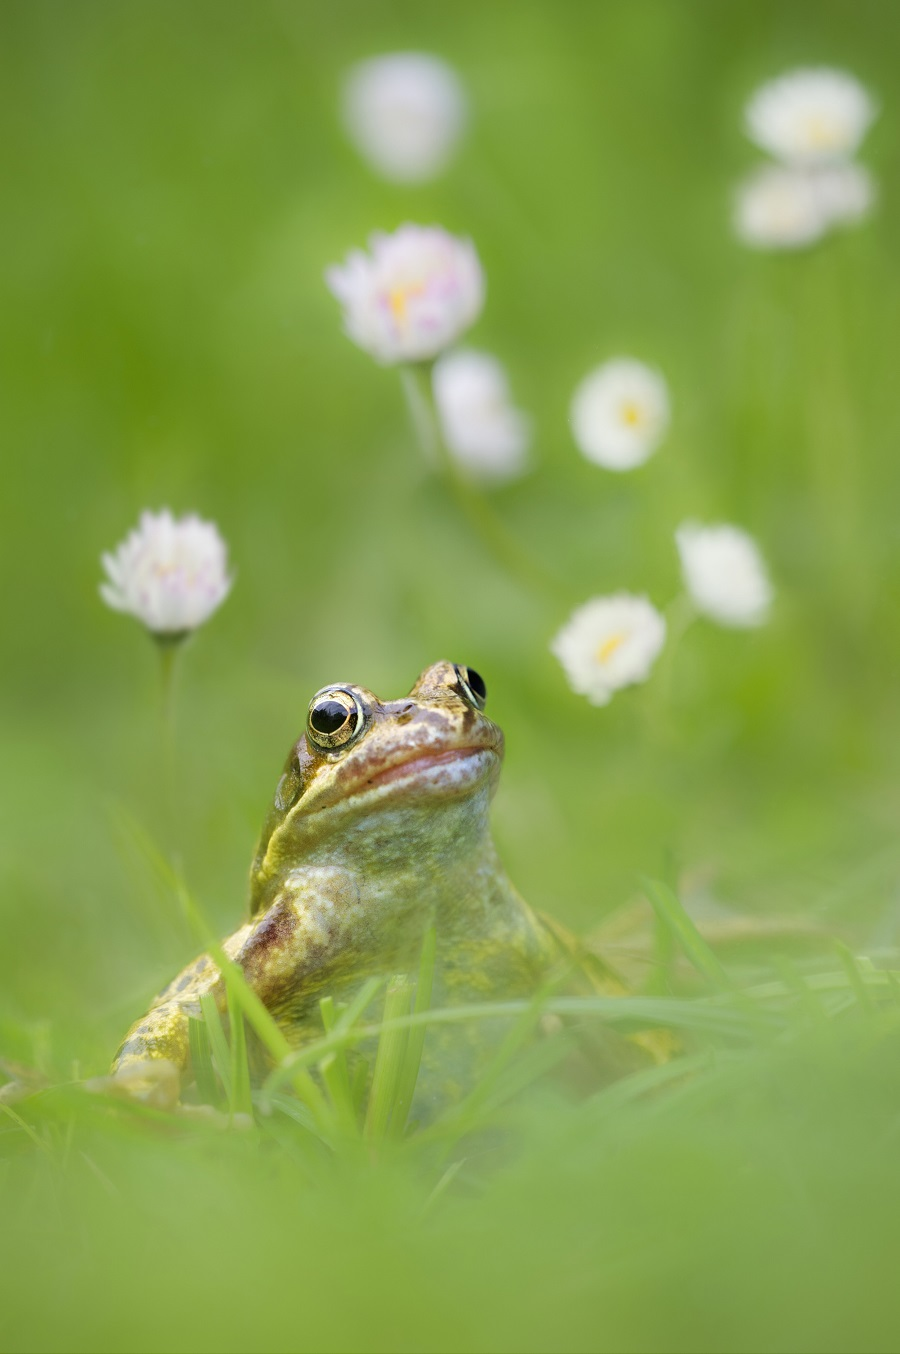 Mandatory Credit: Photo by FLPA/REX Shutterstock (3275278a) Common Frog (Rana temporaria) adult, sitting on grass with daisy flowers, Loughborough, Leicestershire, England Nature